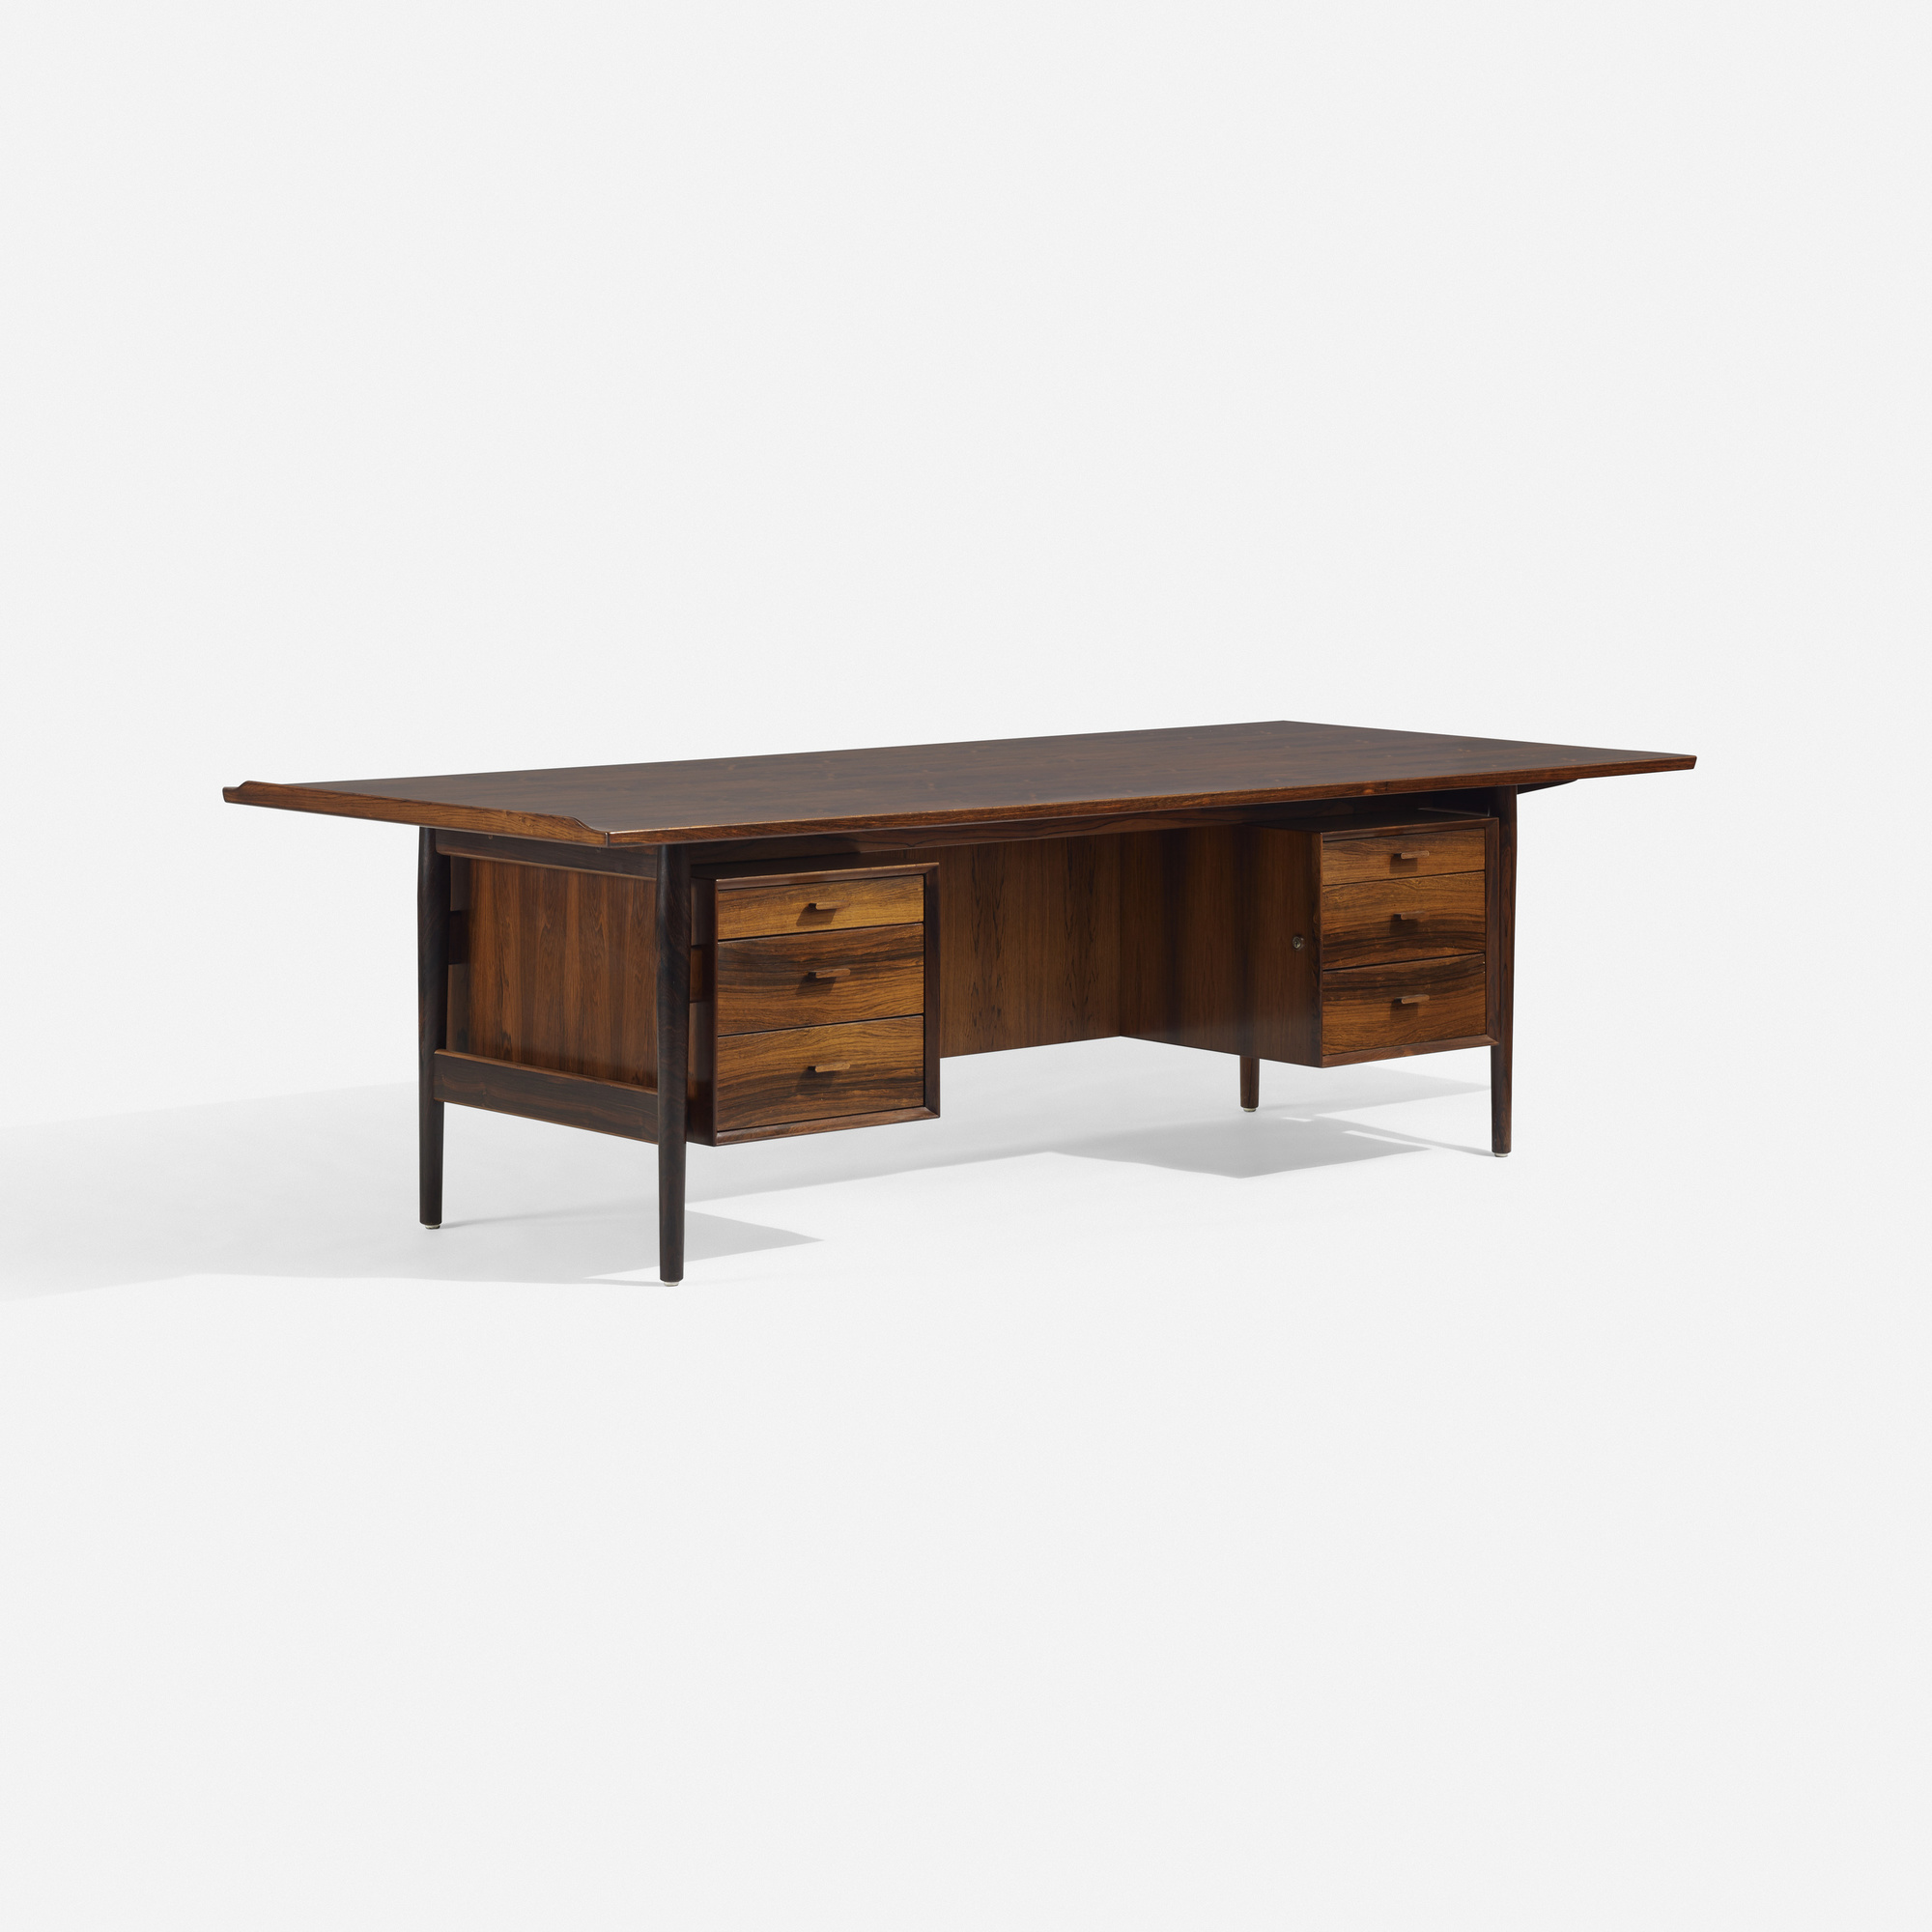 282: Arne Vodder / desk, model 216 (1 of 4)